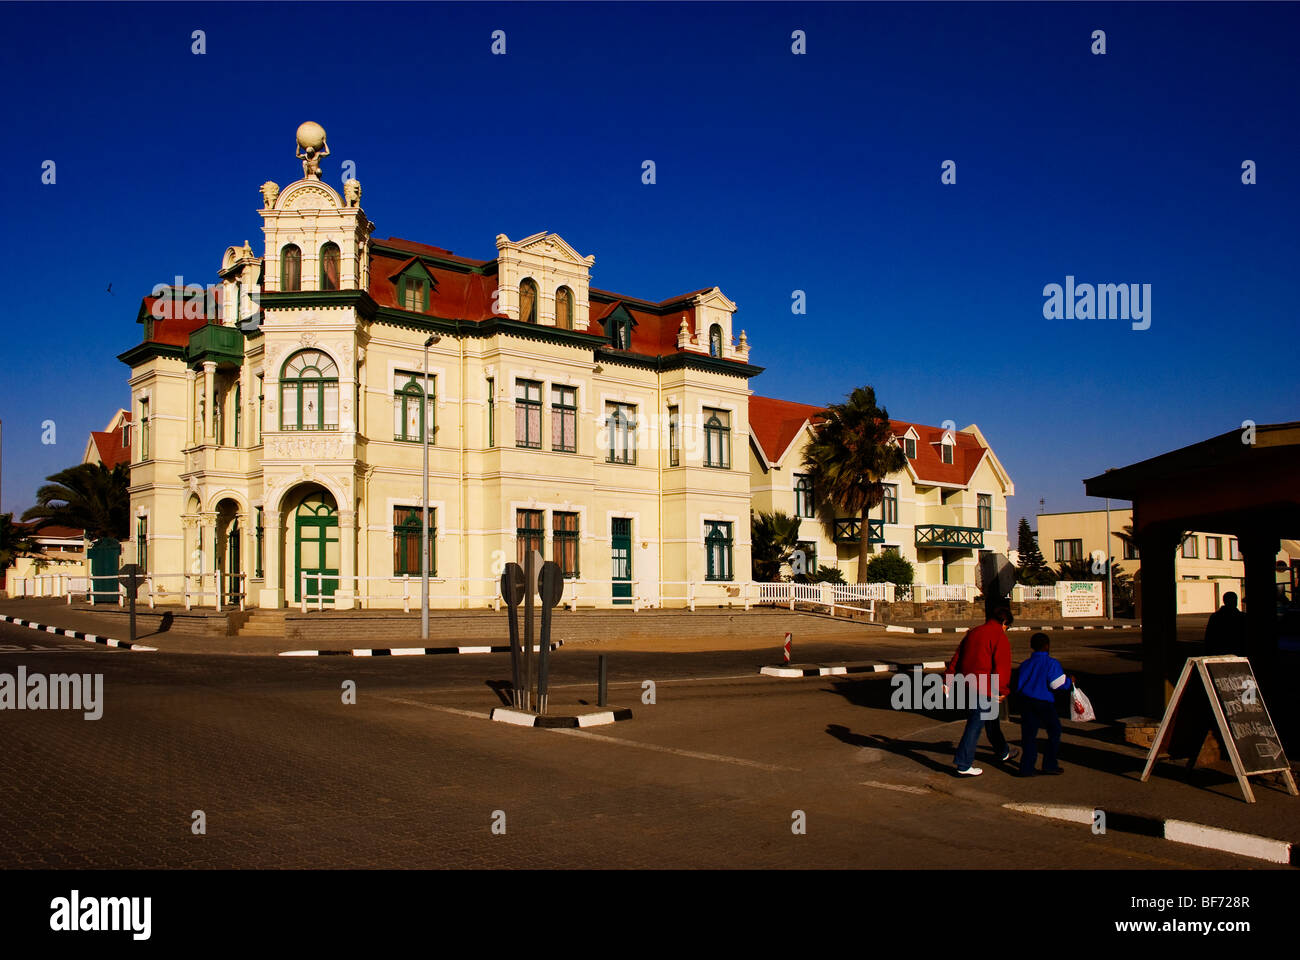 German architecture at Swakopmund town at the Namibian Coast - Stock Image